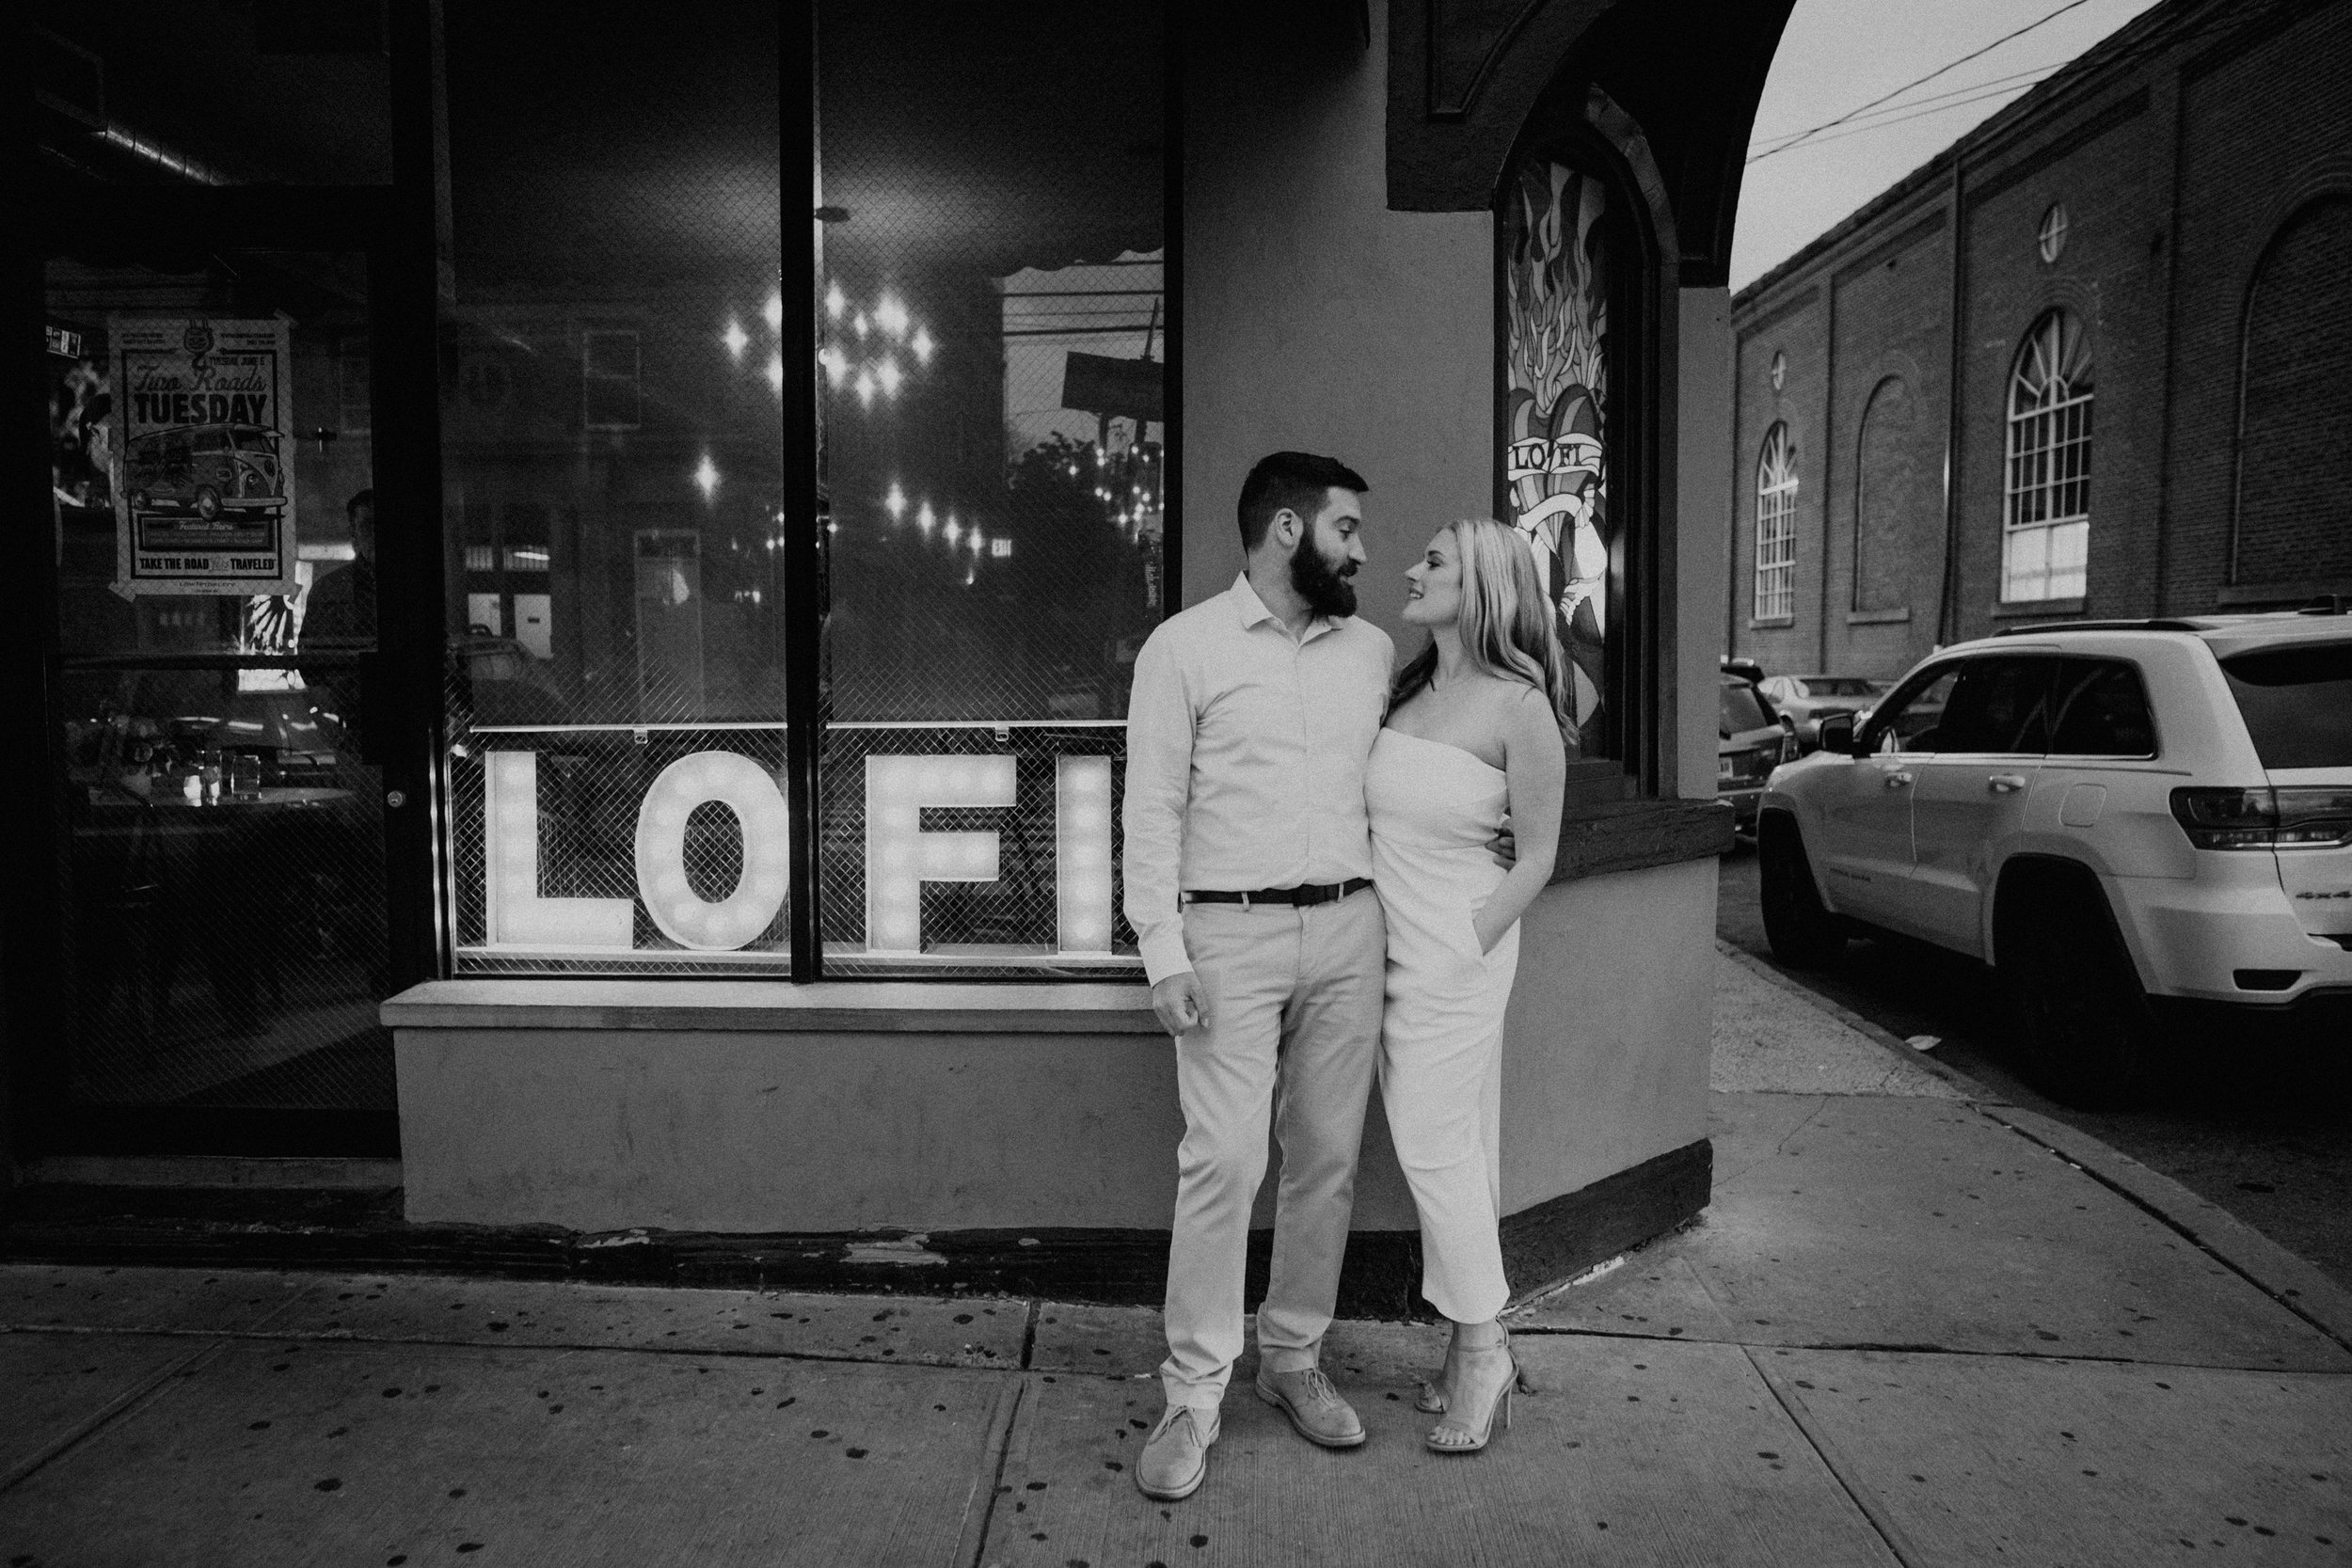 KateMax_JerseyCity_Lofi_Wedding_TowardsTheMoon-33.jpg